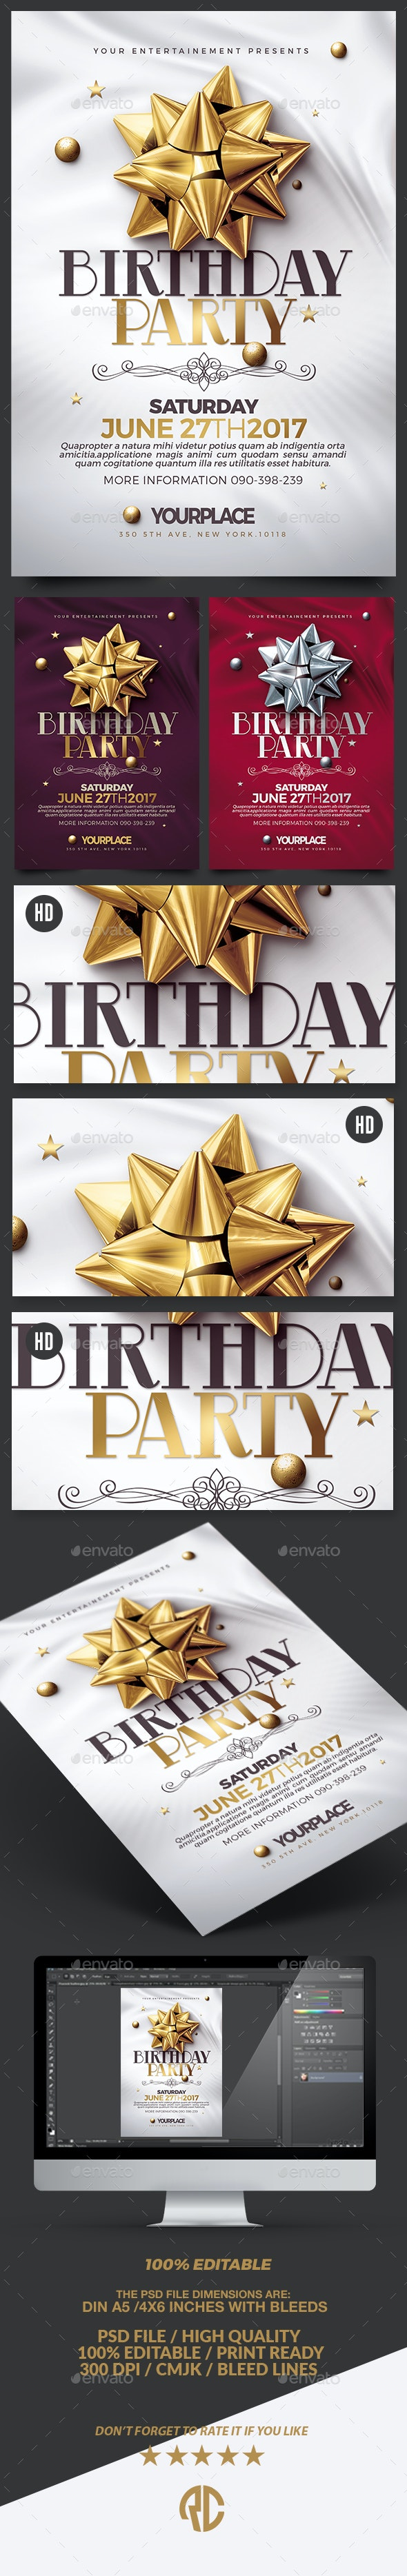 Birthday Party | 3 Psd Flyer Templates - Events Flyers